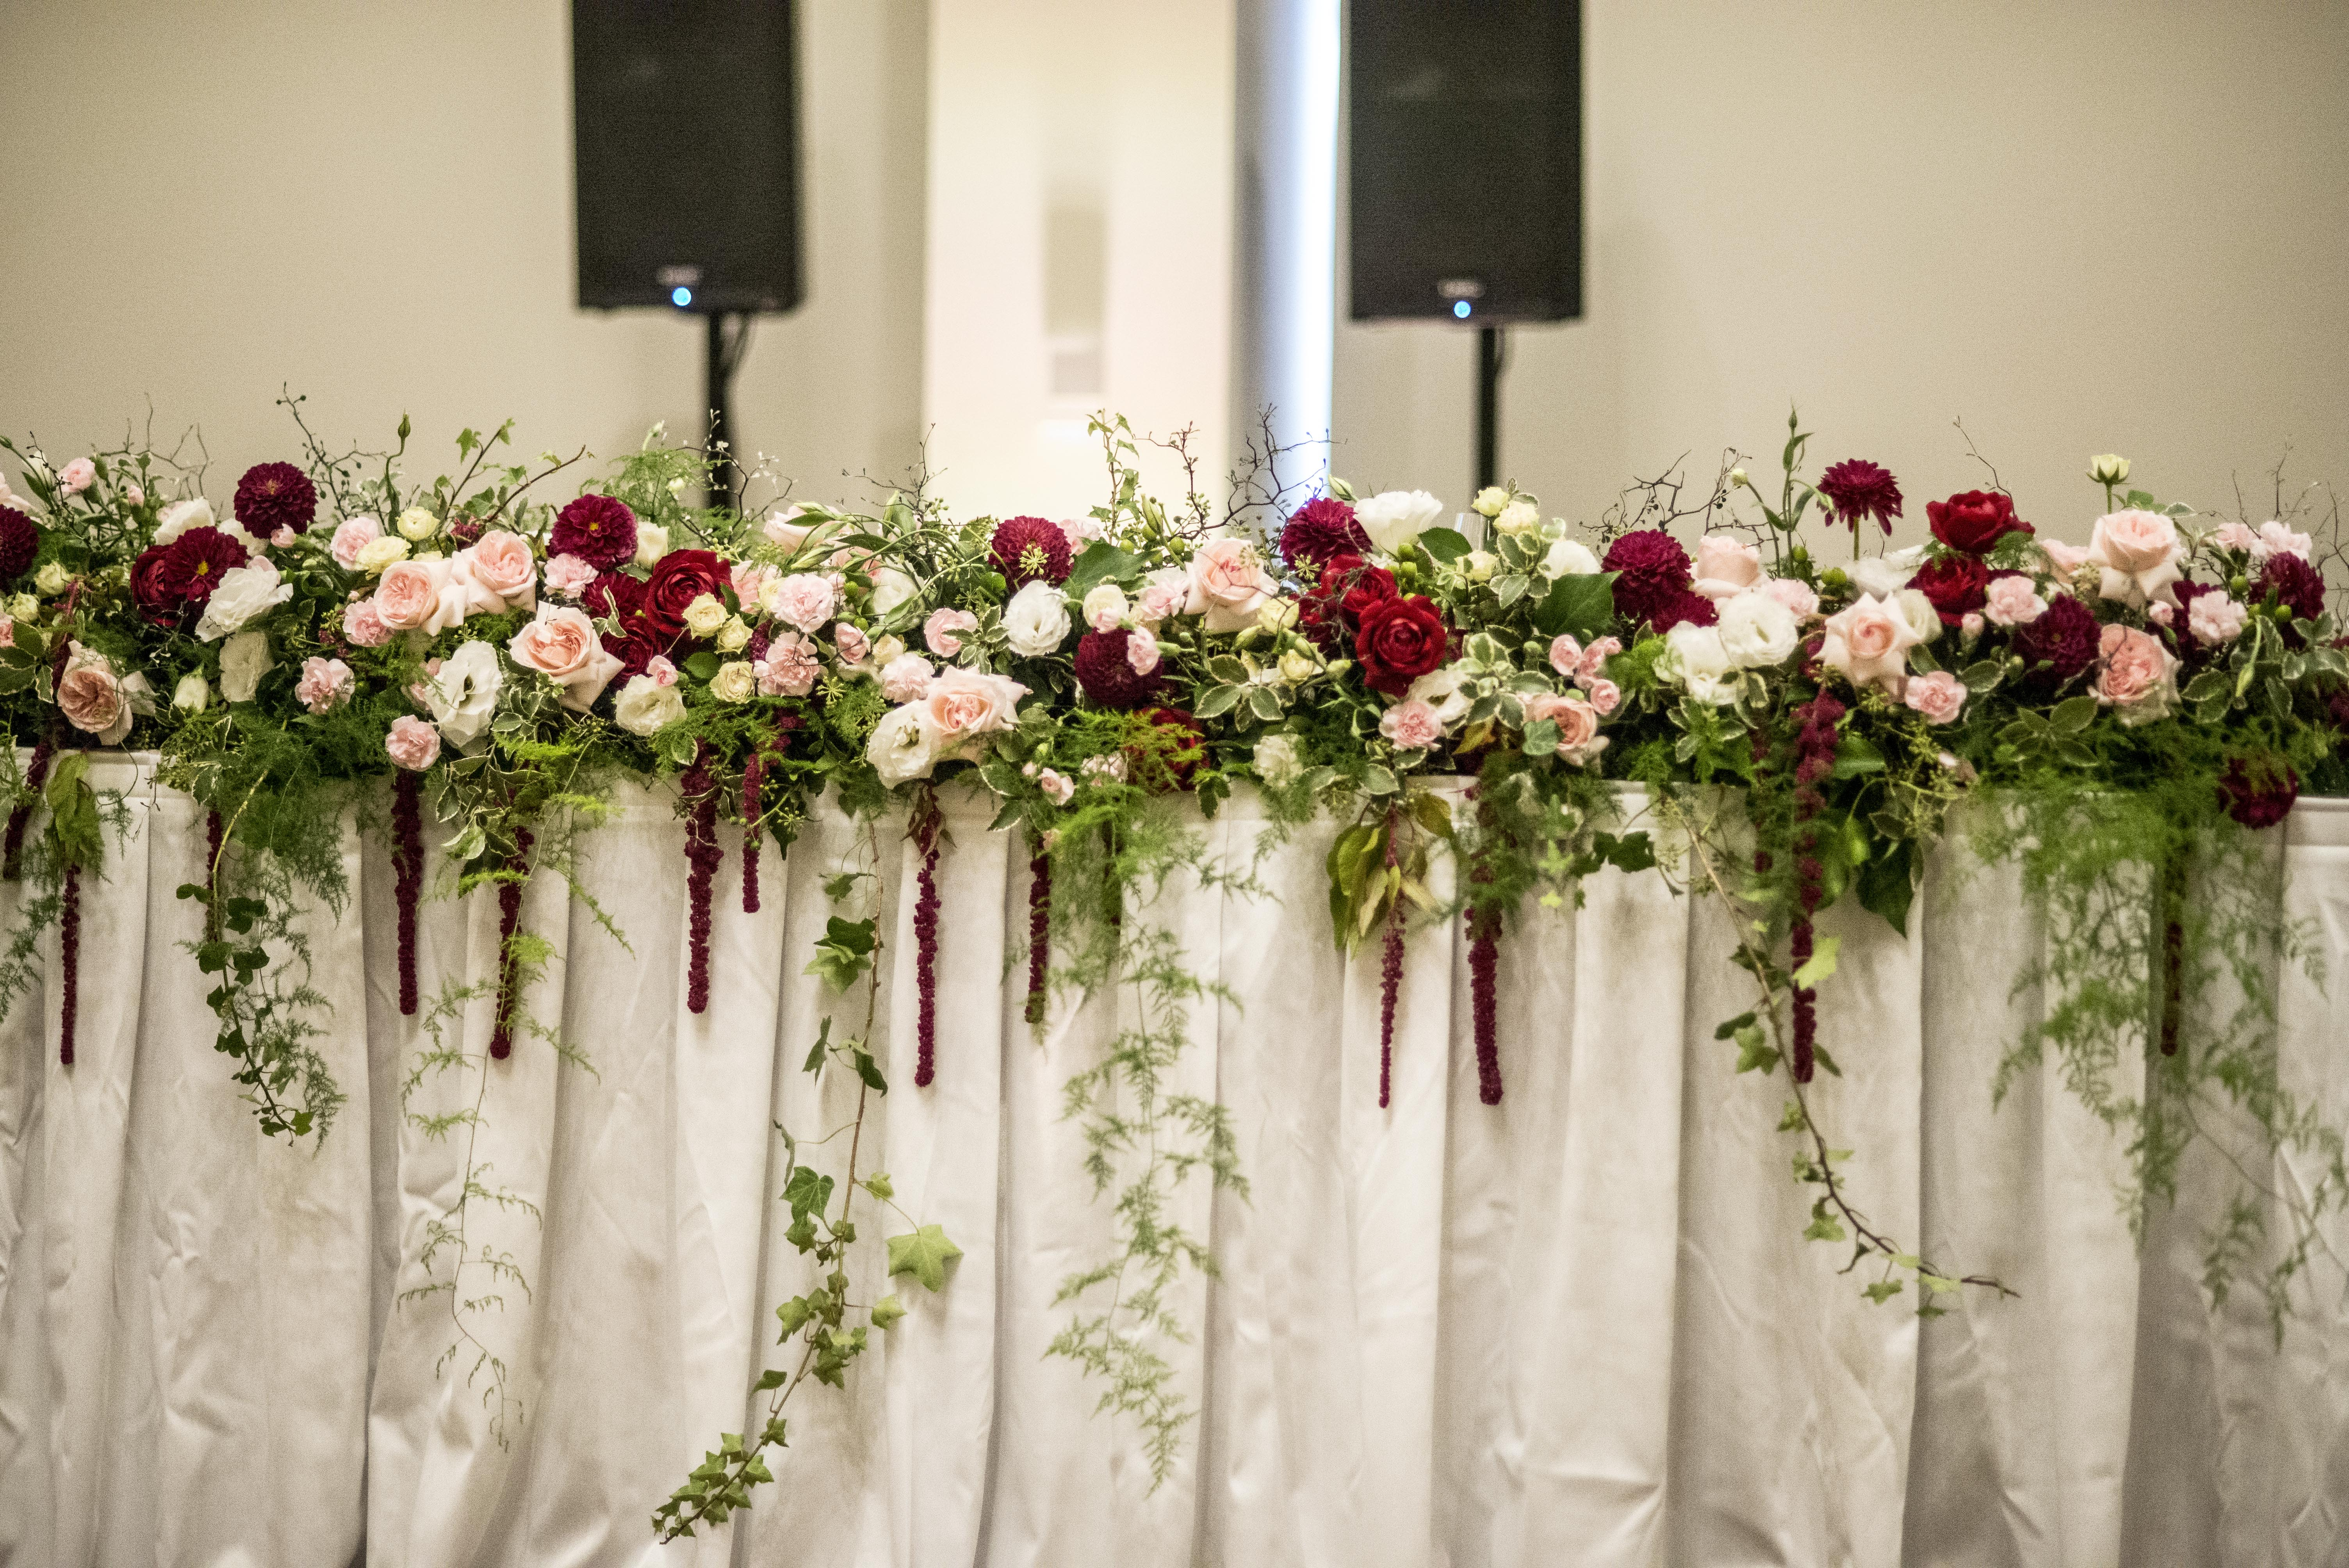 Floral garland for the bridal table